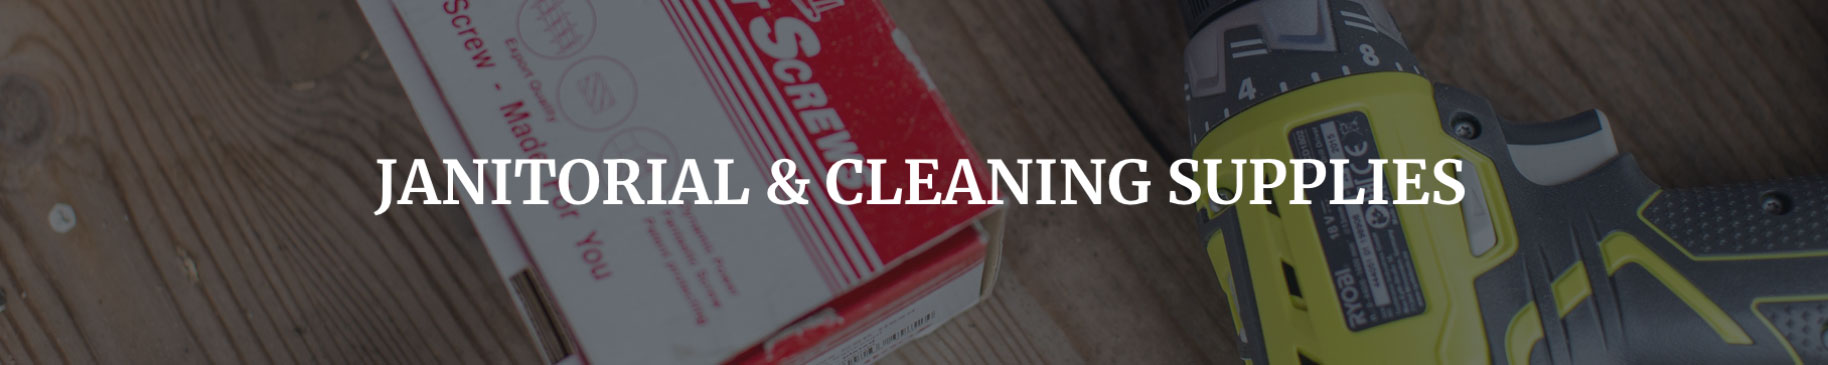 janitorial and cleaning supplies vip industrial perth